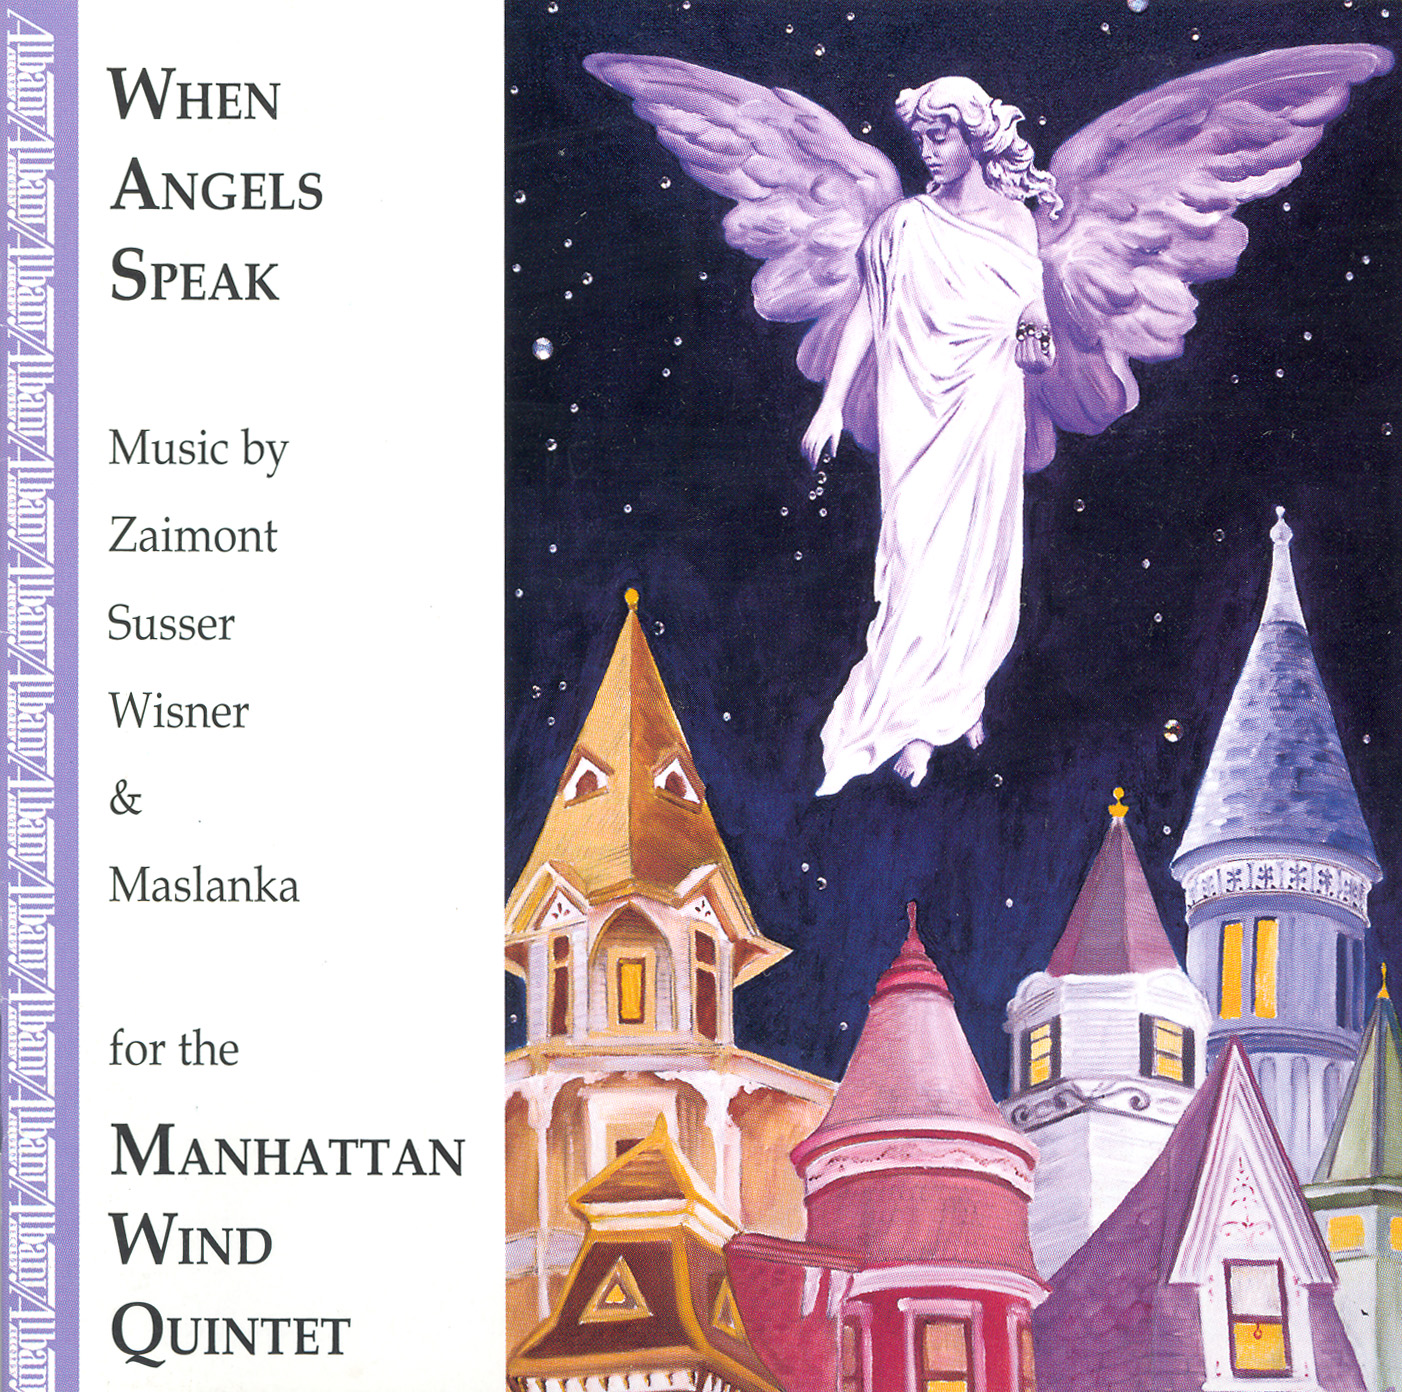 Zaimont, J.: When Angels Speak - Wisner, S.: Nocturne - Maslanka, D.: Wind Quintet No. 2 - Susser, P.: Till Drumlin Waves